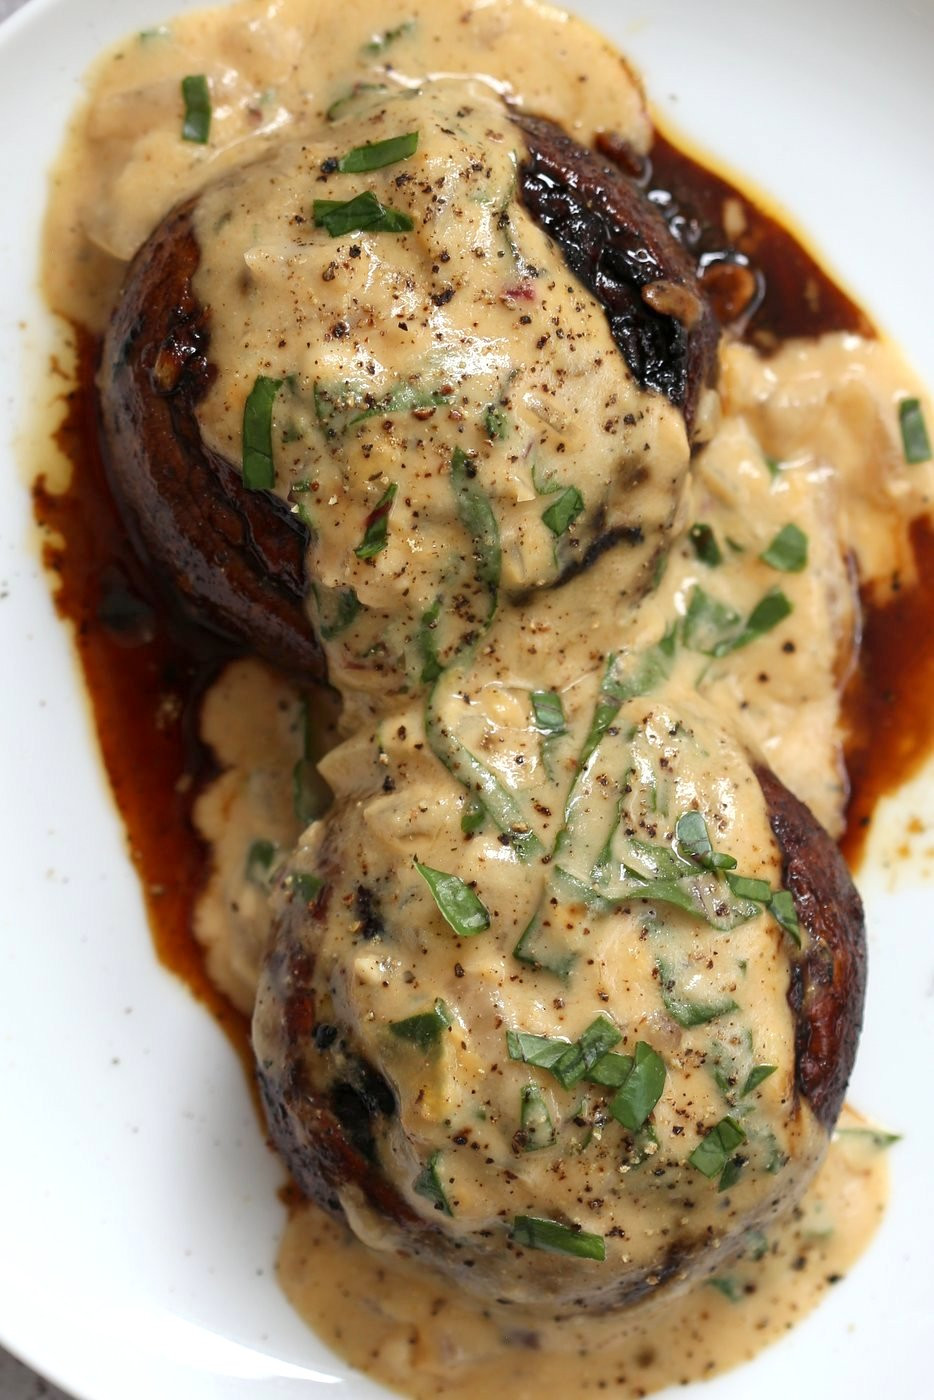 Vegan Portobello Mushroom Recipes  Grilled Portobello Mushrooms with Garlic Sauce Vegan Richa